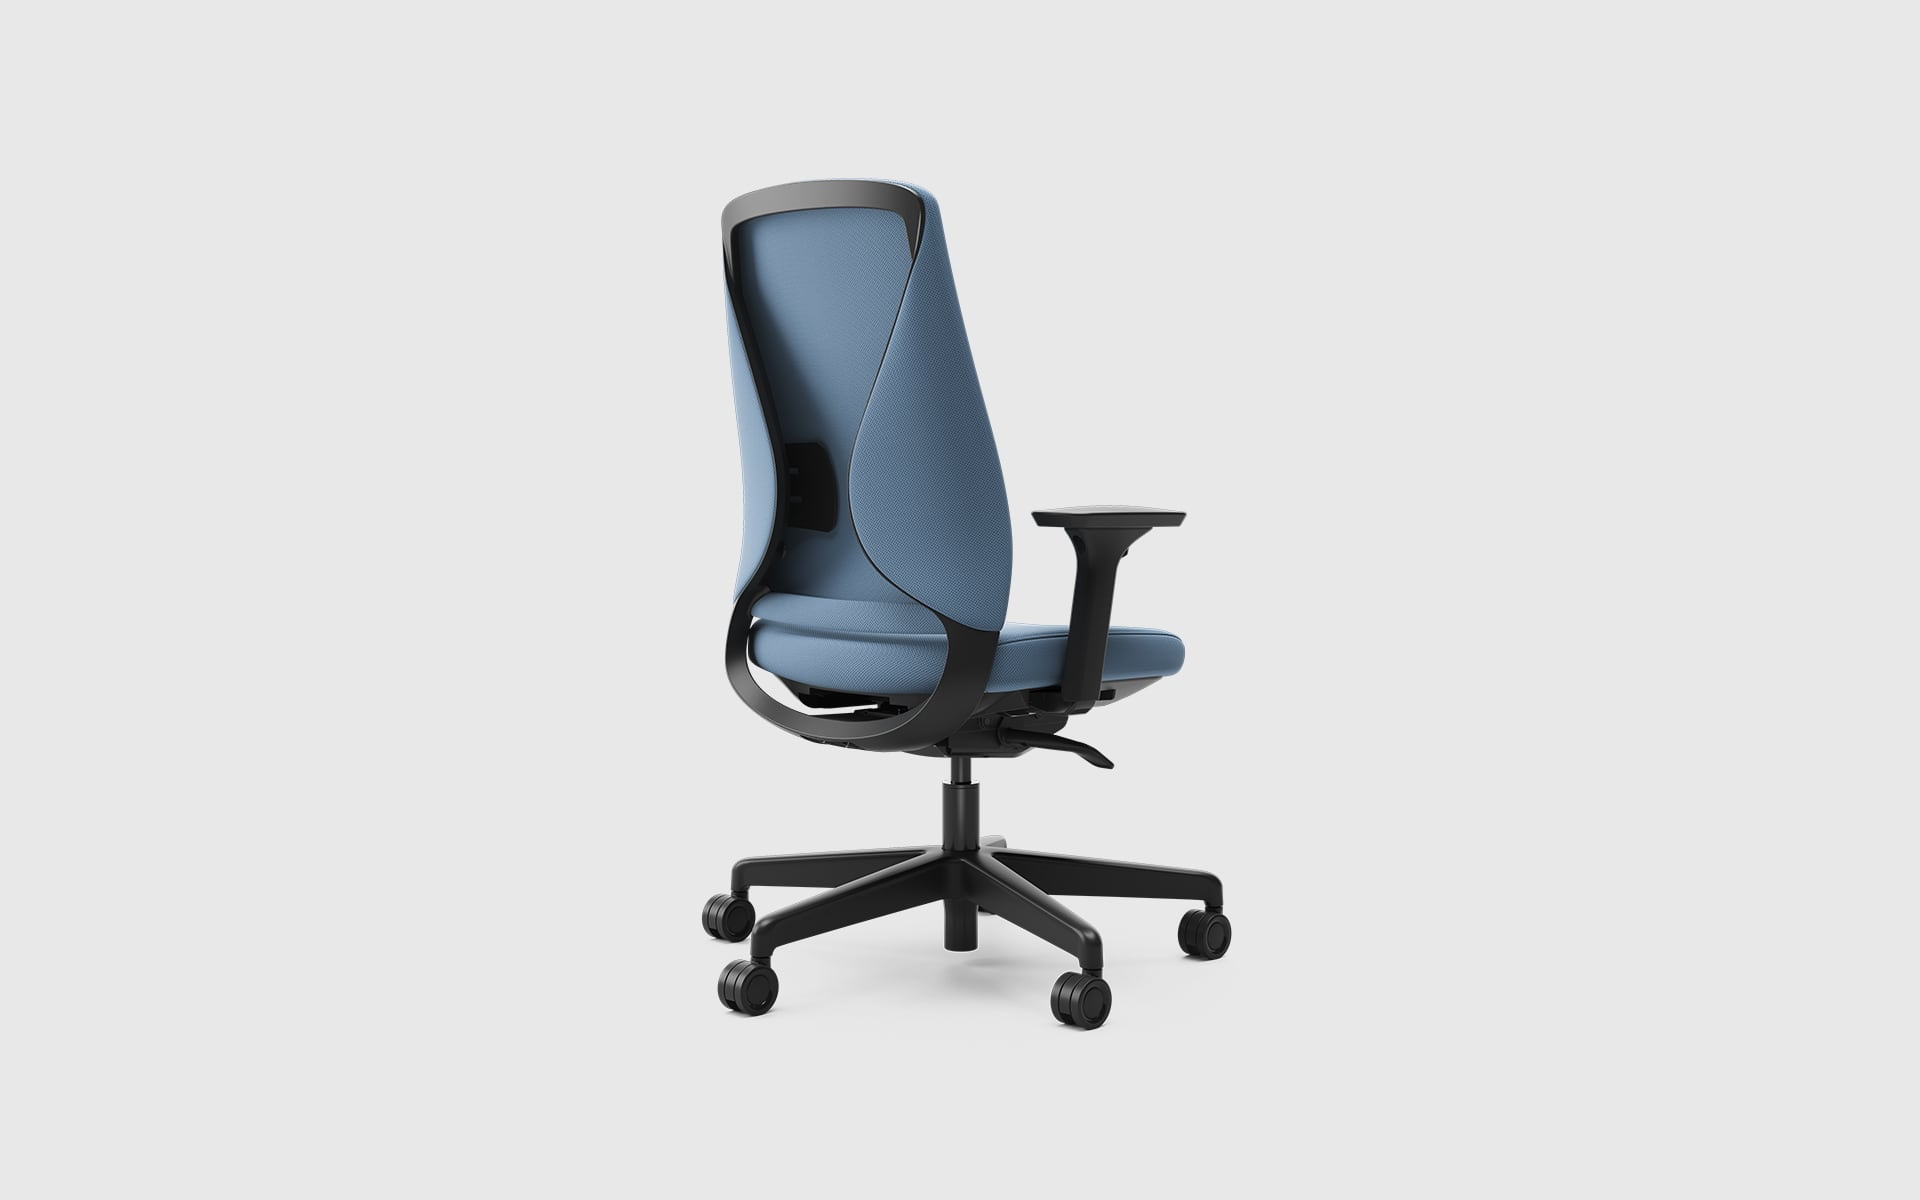 Comfordy Silhouette office chair by ITO Design with light blue upholstery